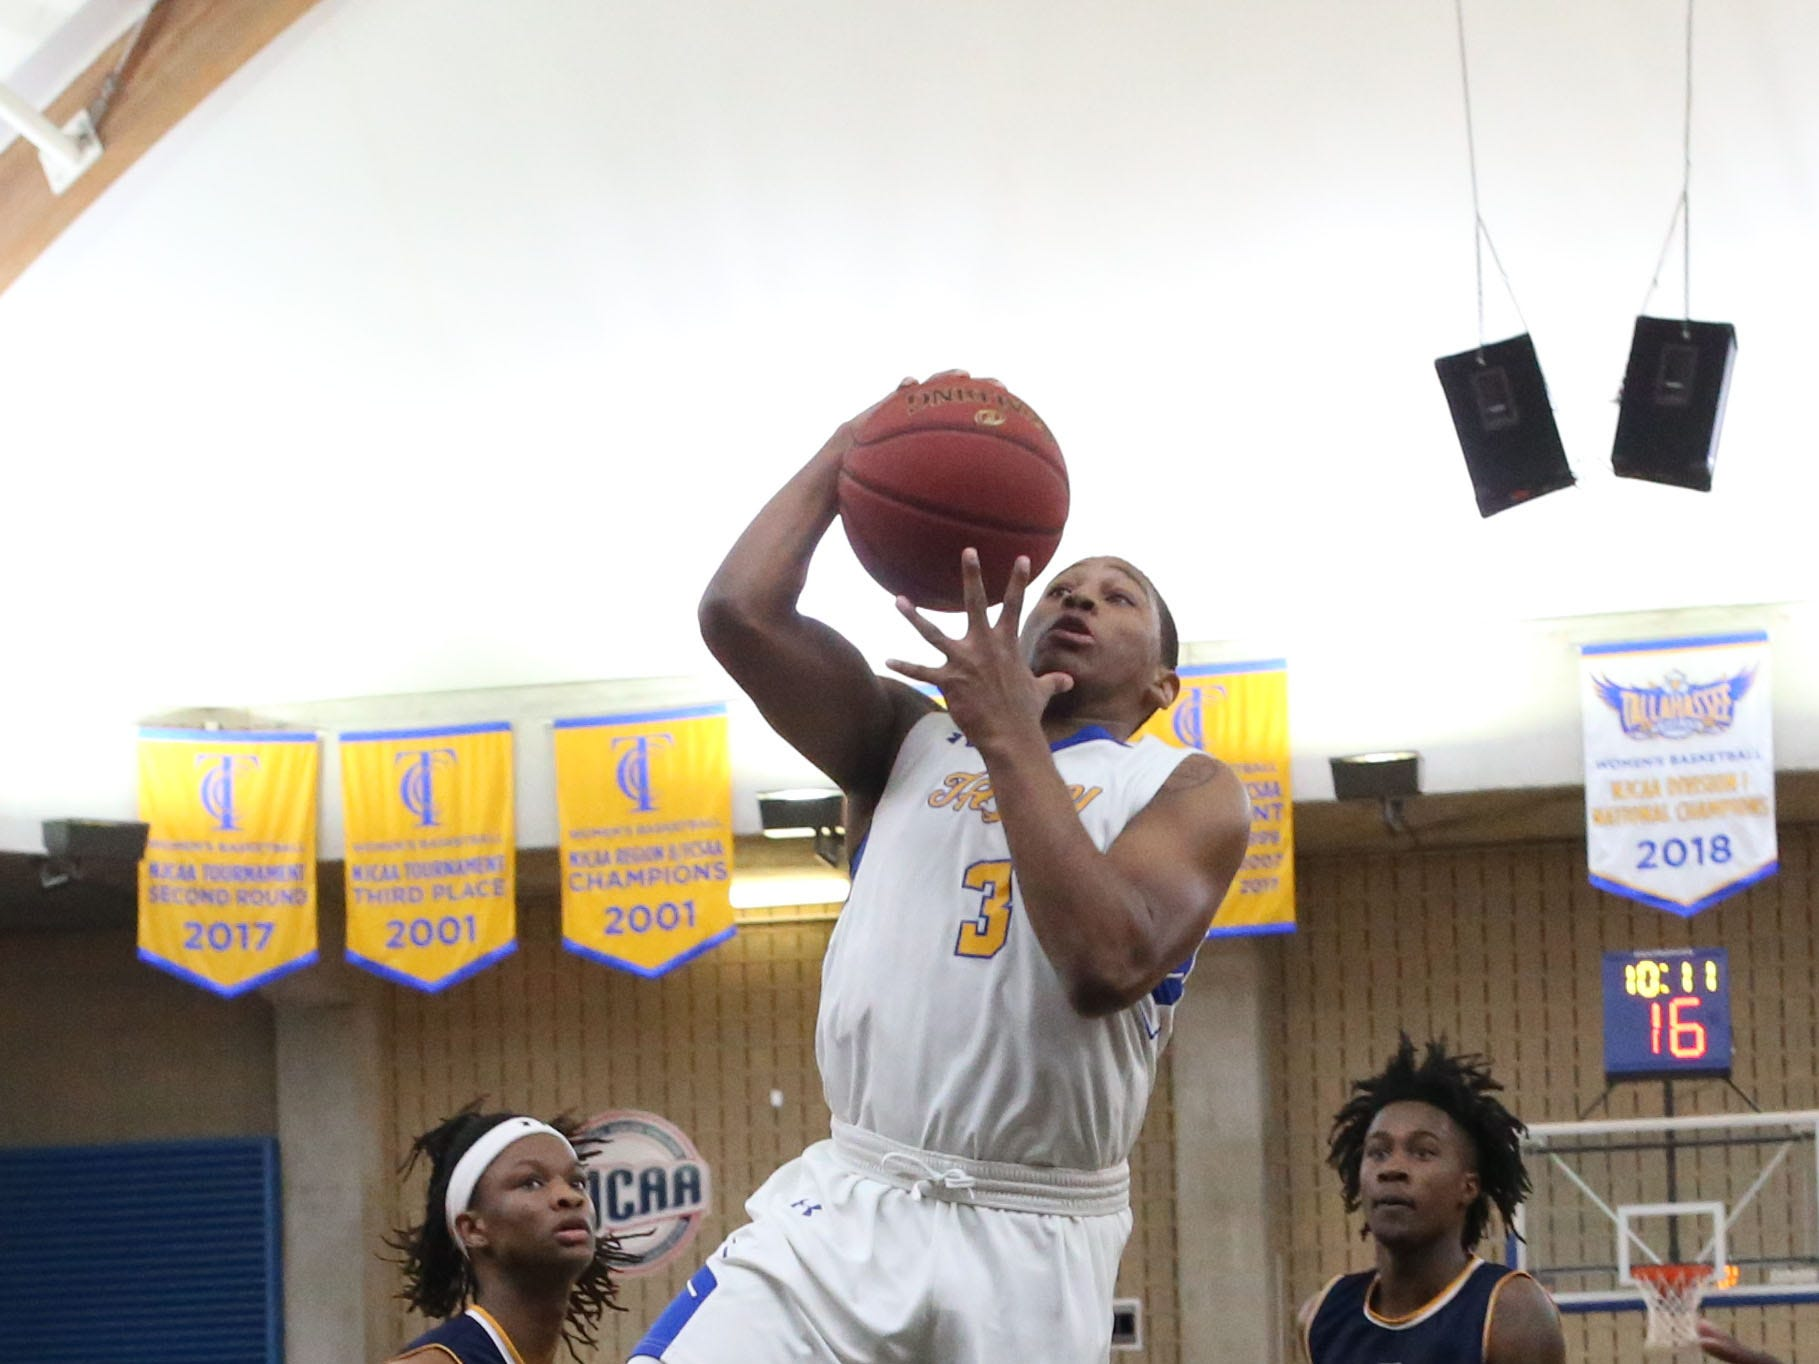 Tallahassee Community College Eagles guard Mustafa Lawrence (3) drives the ball to the hoop. The Tallahassee Community College Eagles host the Gulf Coast State College Commodores in a conference match-up in the Eagledome, Saturday, Jan. 5, 2019.